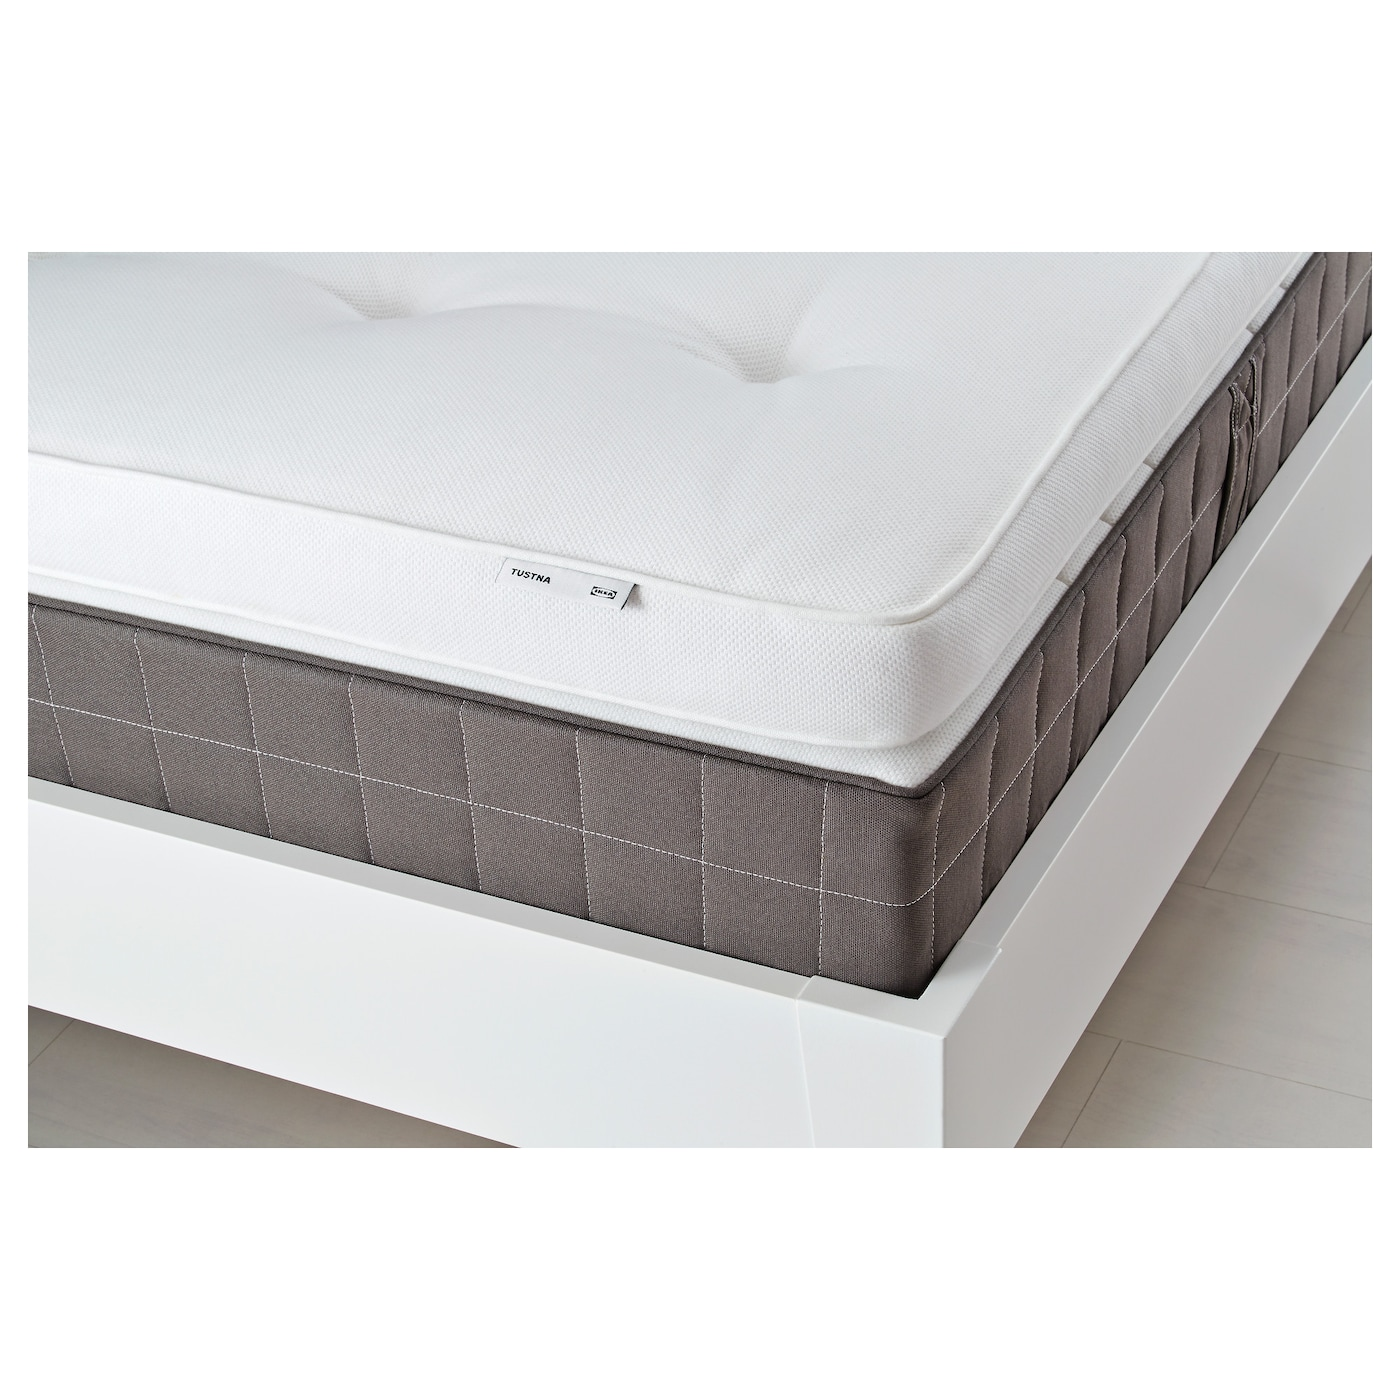 IKEA TUSTNA mattress topper Easy to bring home since it is roll packed.